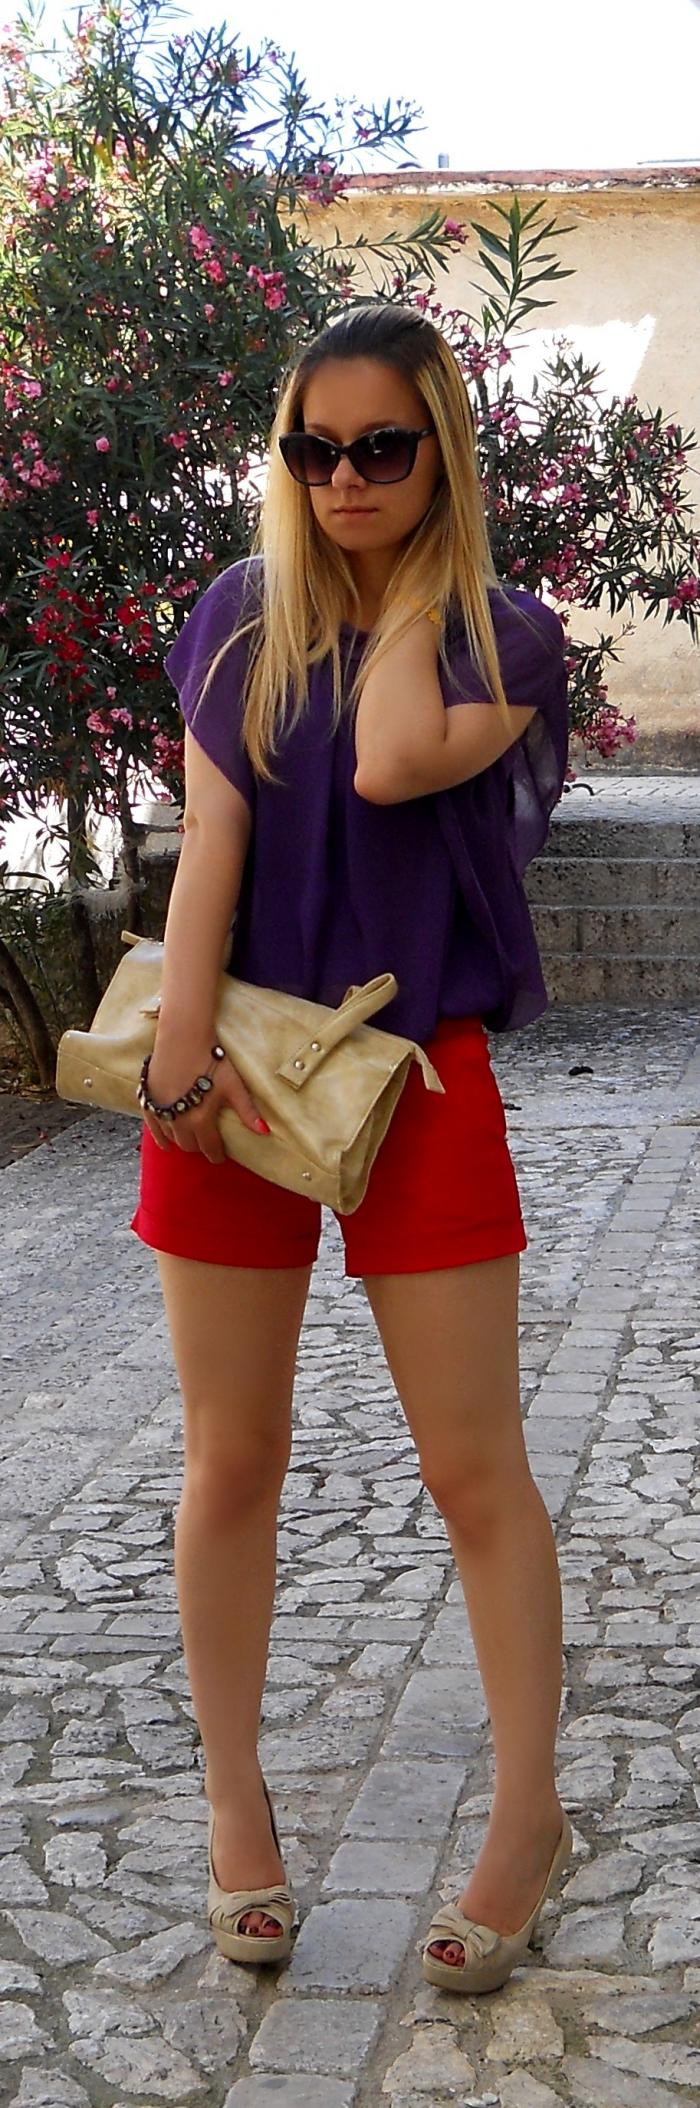 violet and red #1